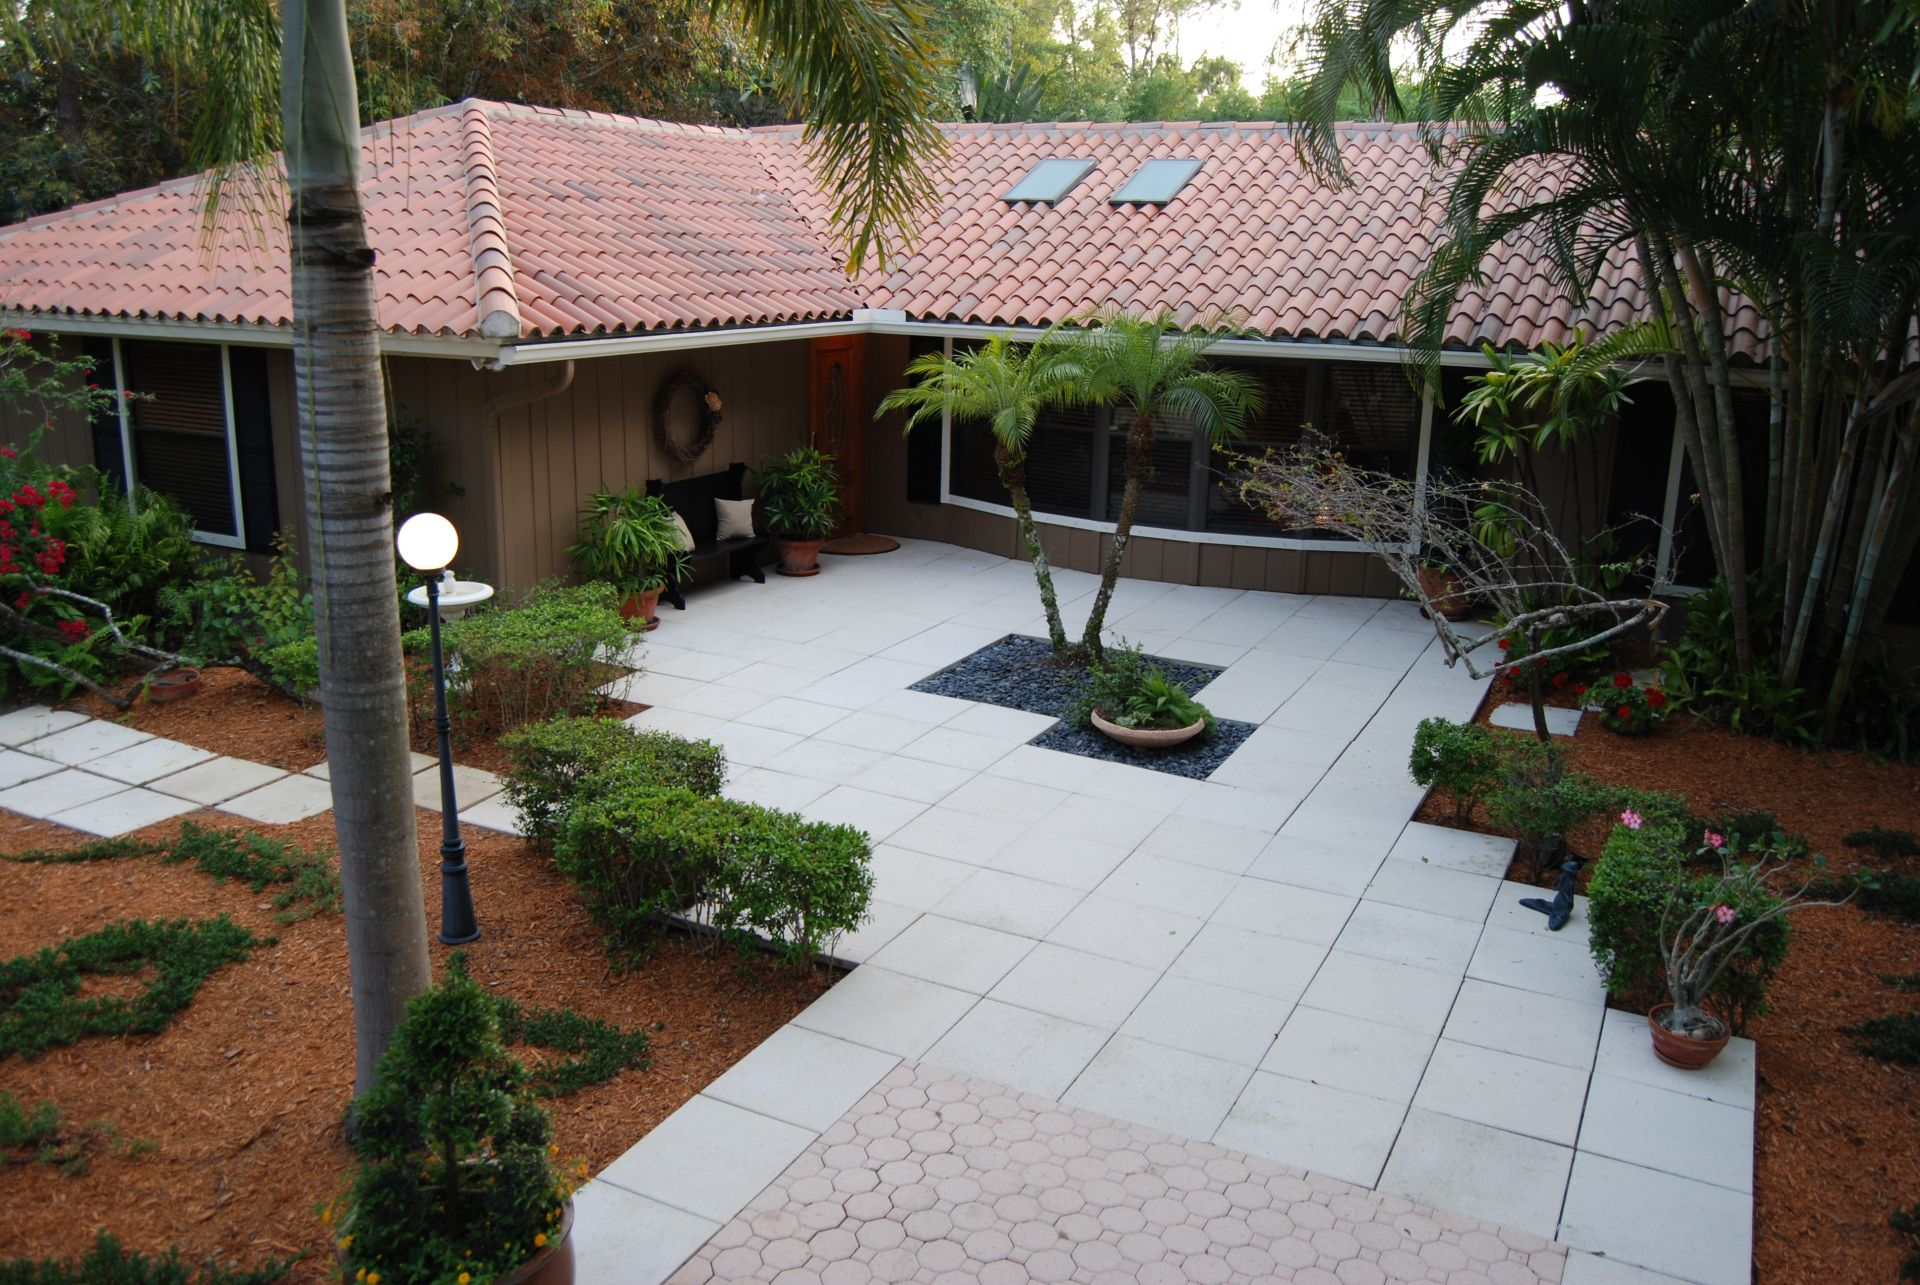 New Listing COMING SOON to MLS in Palm Beach Little Ranches